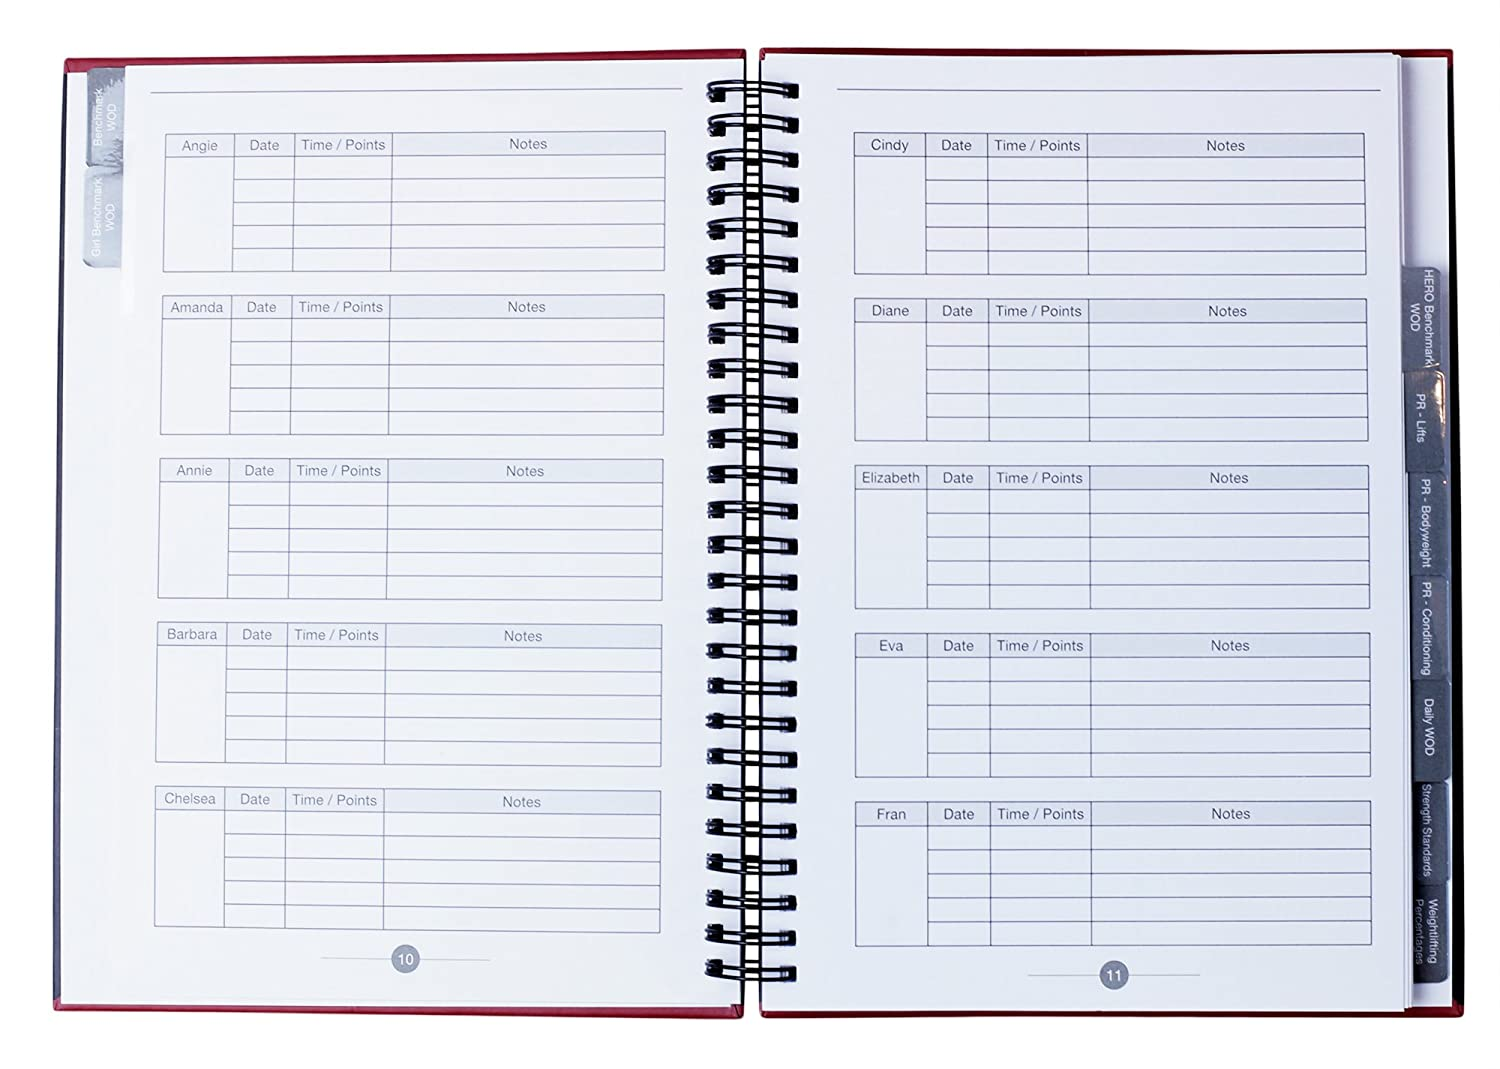 Track Your WOD Journal - The Ultimate Cross Training Tracking Journal. 3rd ed. 6x9 Hardcover w/ pen included. Track 210 WODs, 9 benchmarks + 25 Girls ...